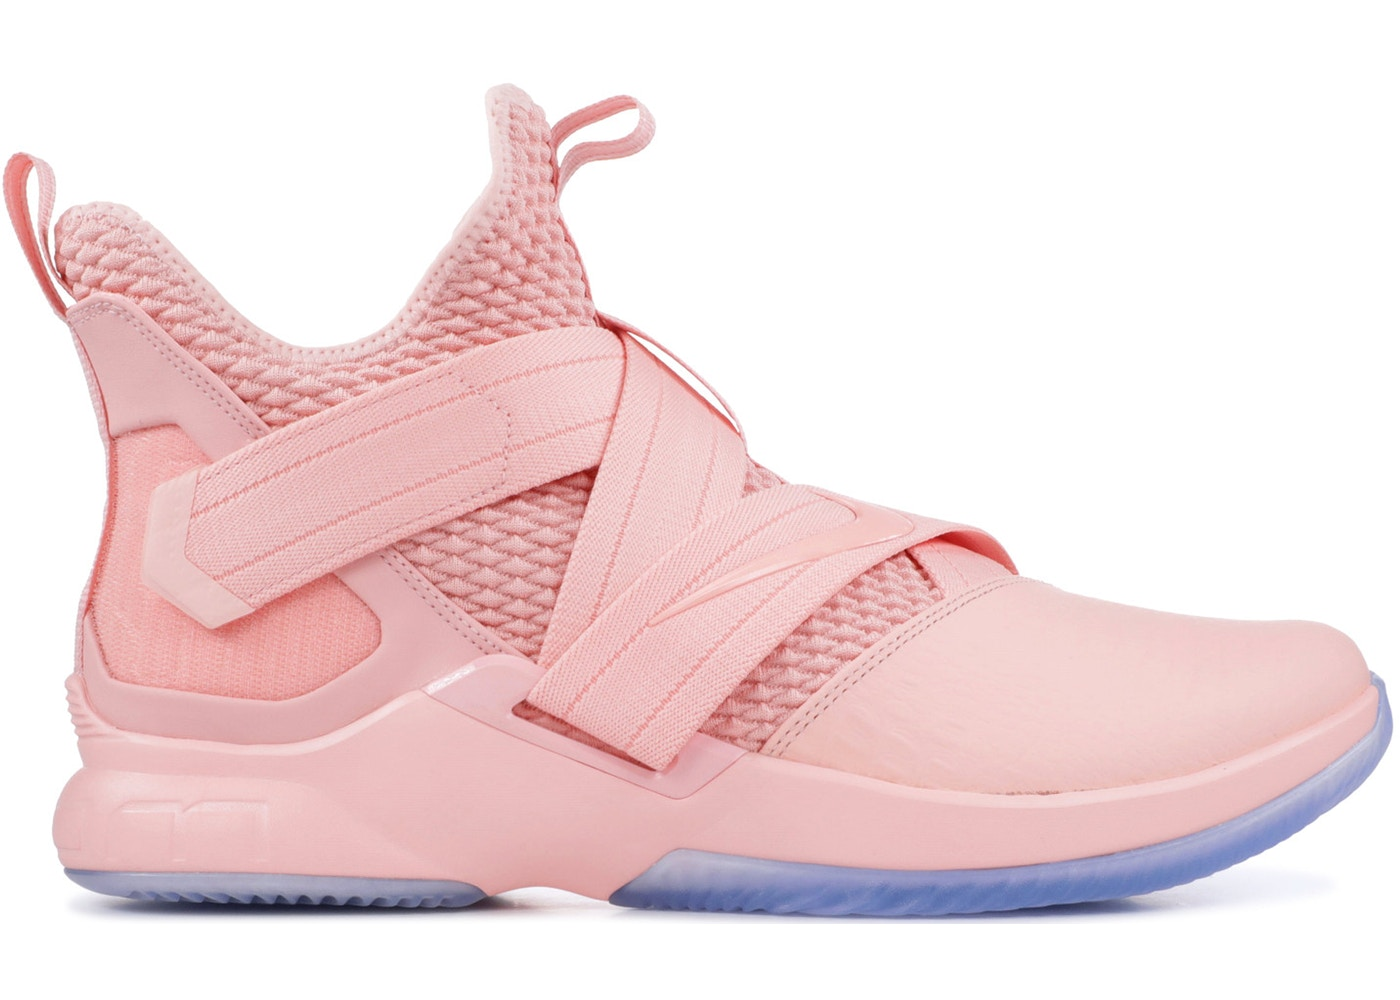 Nike LeBron Soldier 12 Soft Pink - AO4054-900